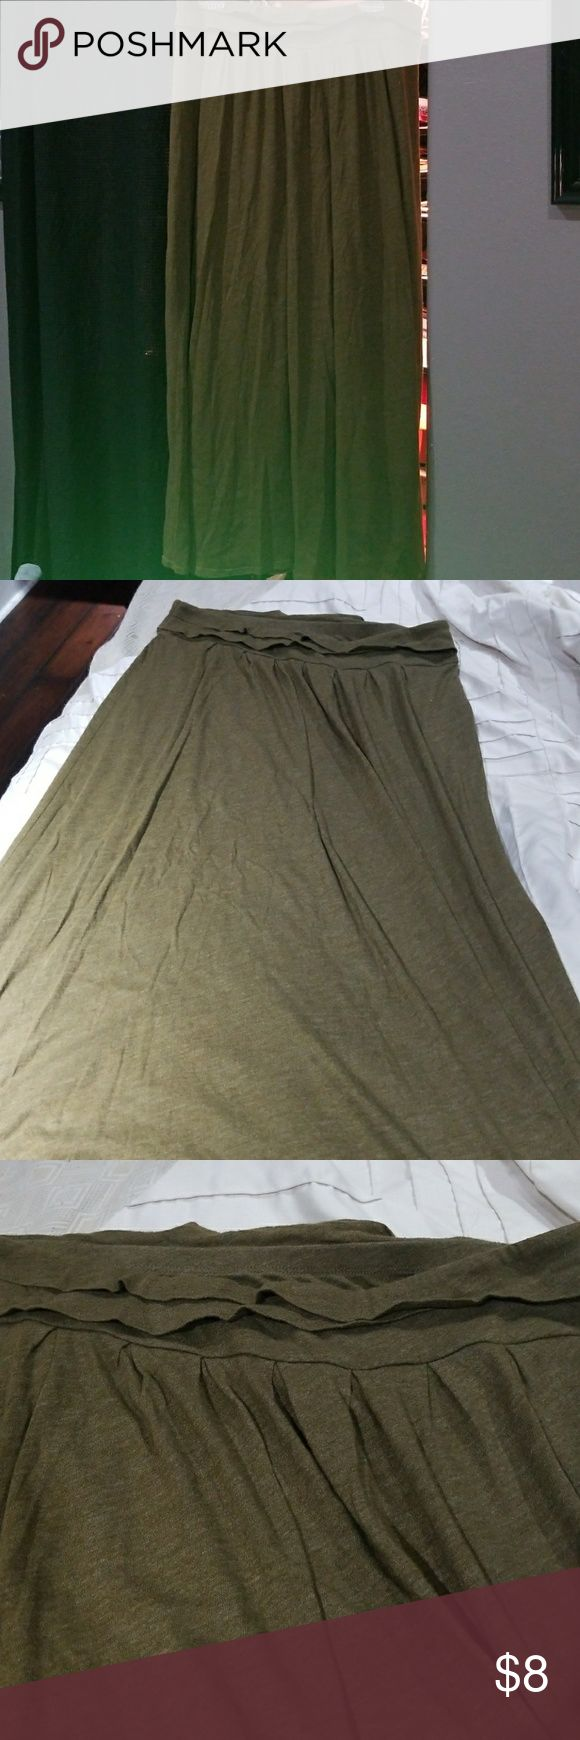 Old navy maxi skirt Olive green maxi skirt with lining inside great condition Skirts Maxi